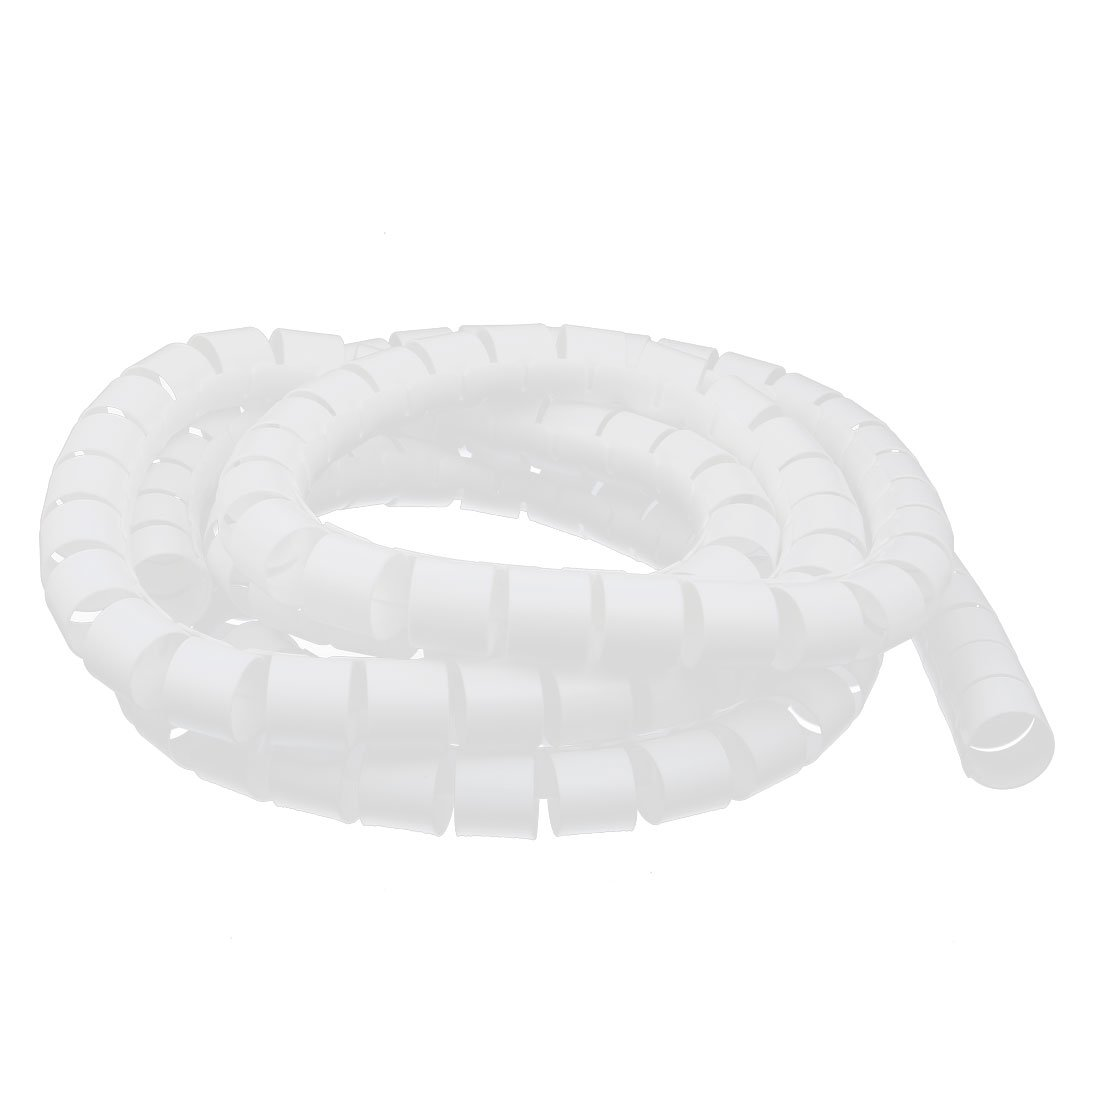 uxcell 30mm Dia Flexible Spiral Tube Cable Wire Wrap White 3.5 Meters Long with Clip